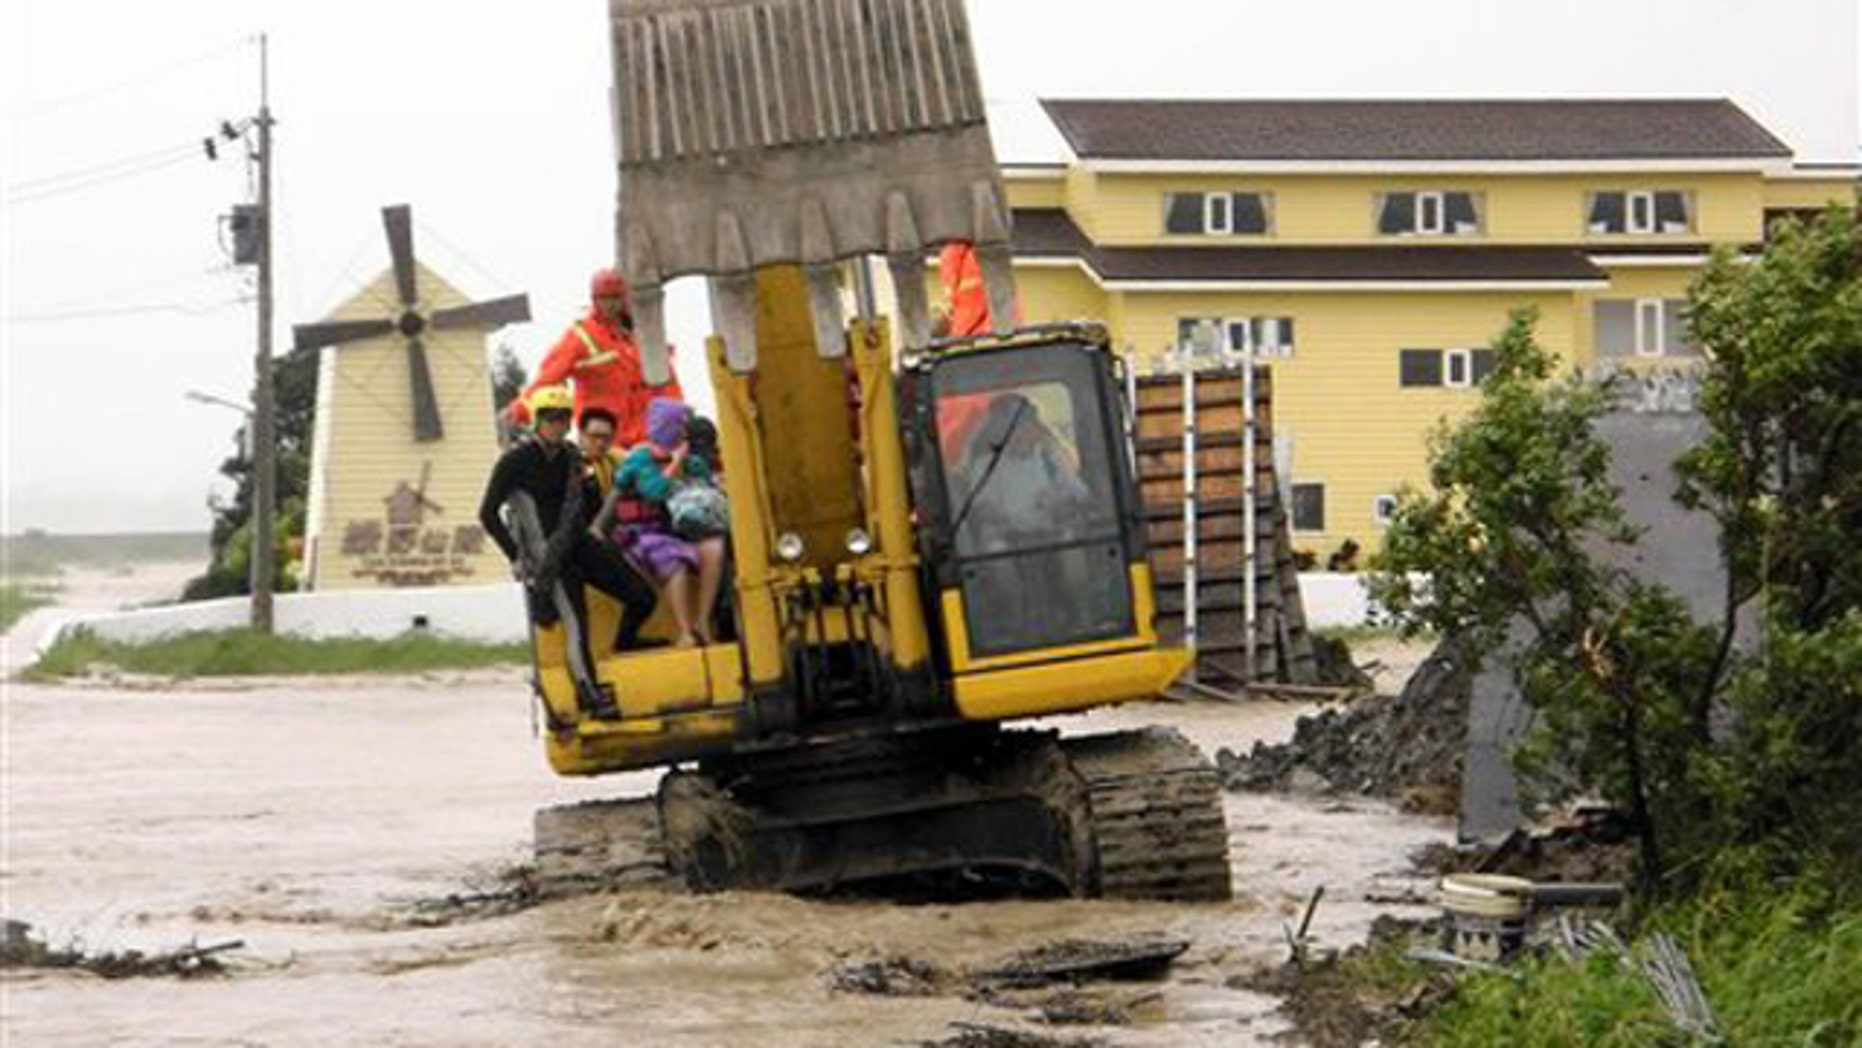 In this photo released by Hengchun Township Fire Department, residents are evacuated on an excavator as Typhoon Nanmadol began blowing toward Taiwan in Hengchu township, Pingtung county, southern Taiwan, Sunday, Aug. 28, 2011.